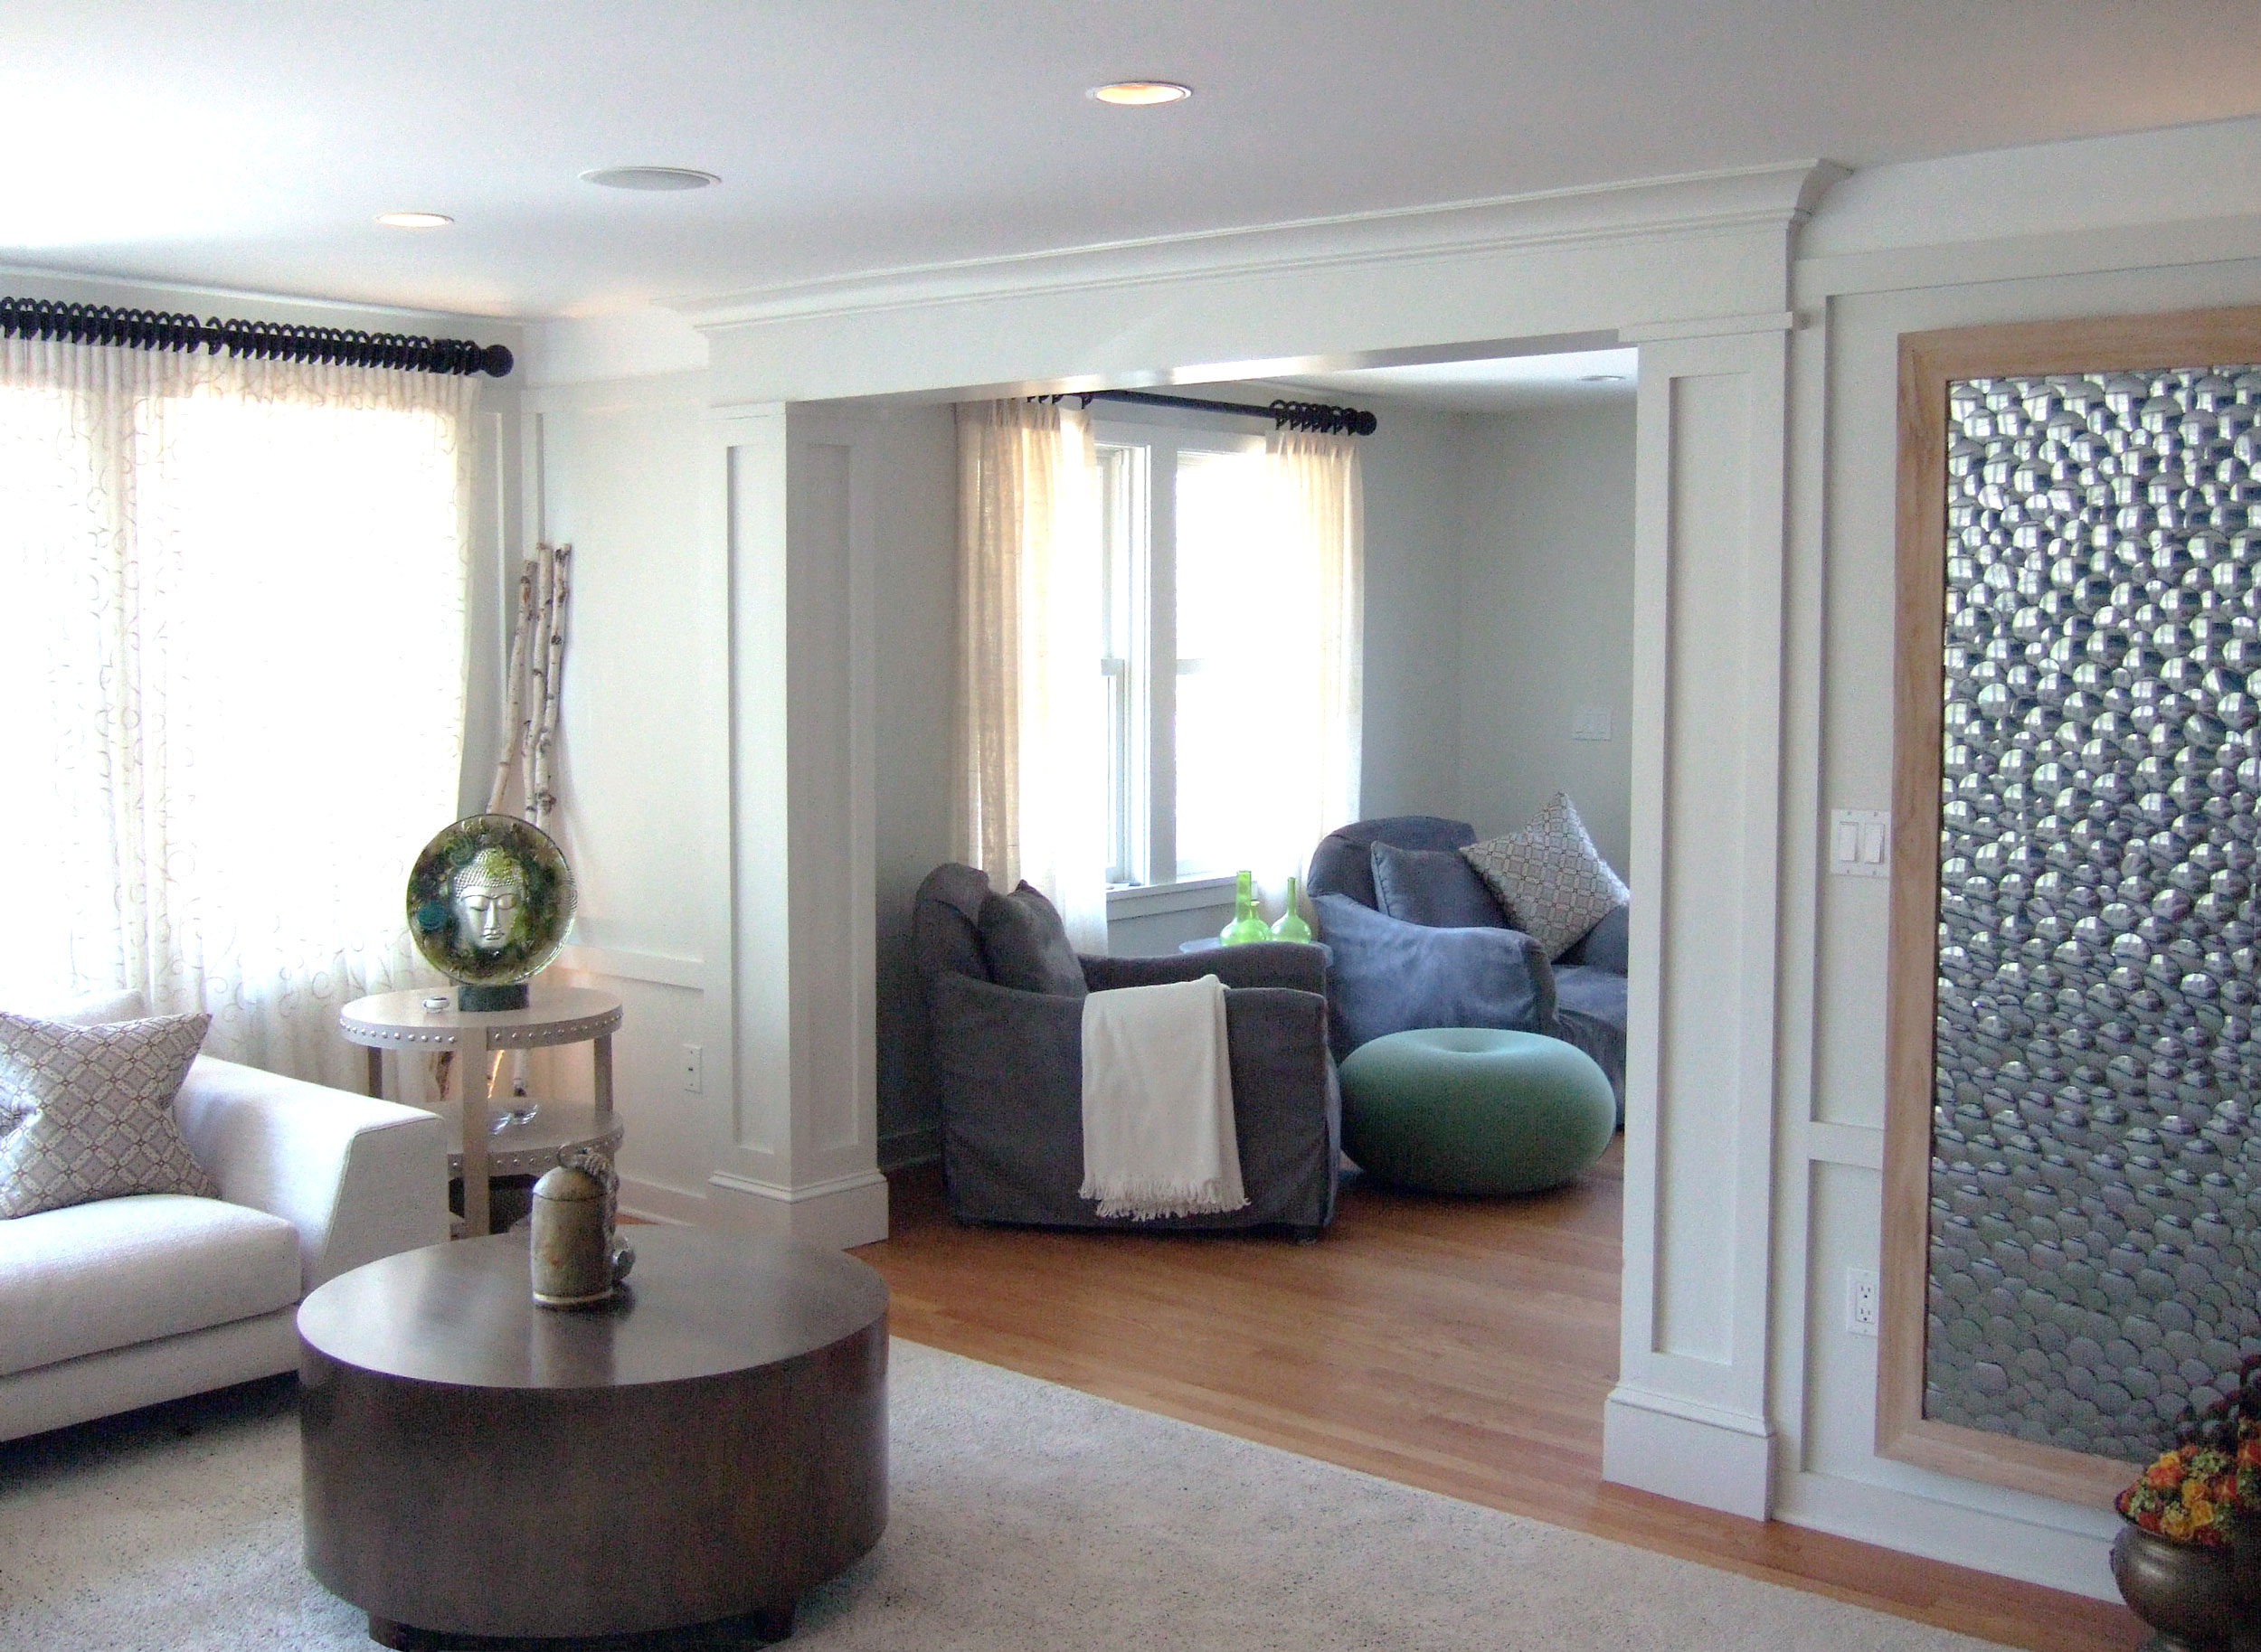 westport-green-renovation-Living-Room.jpg